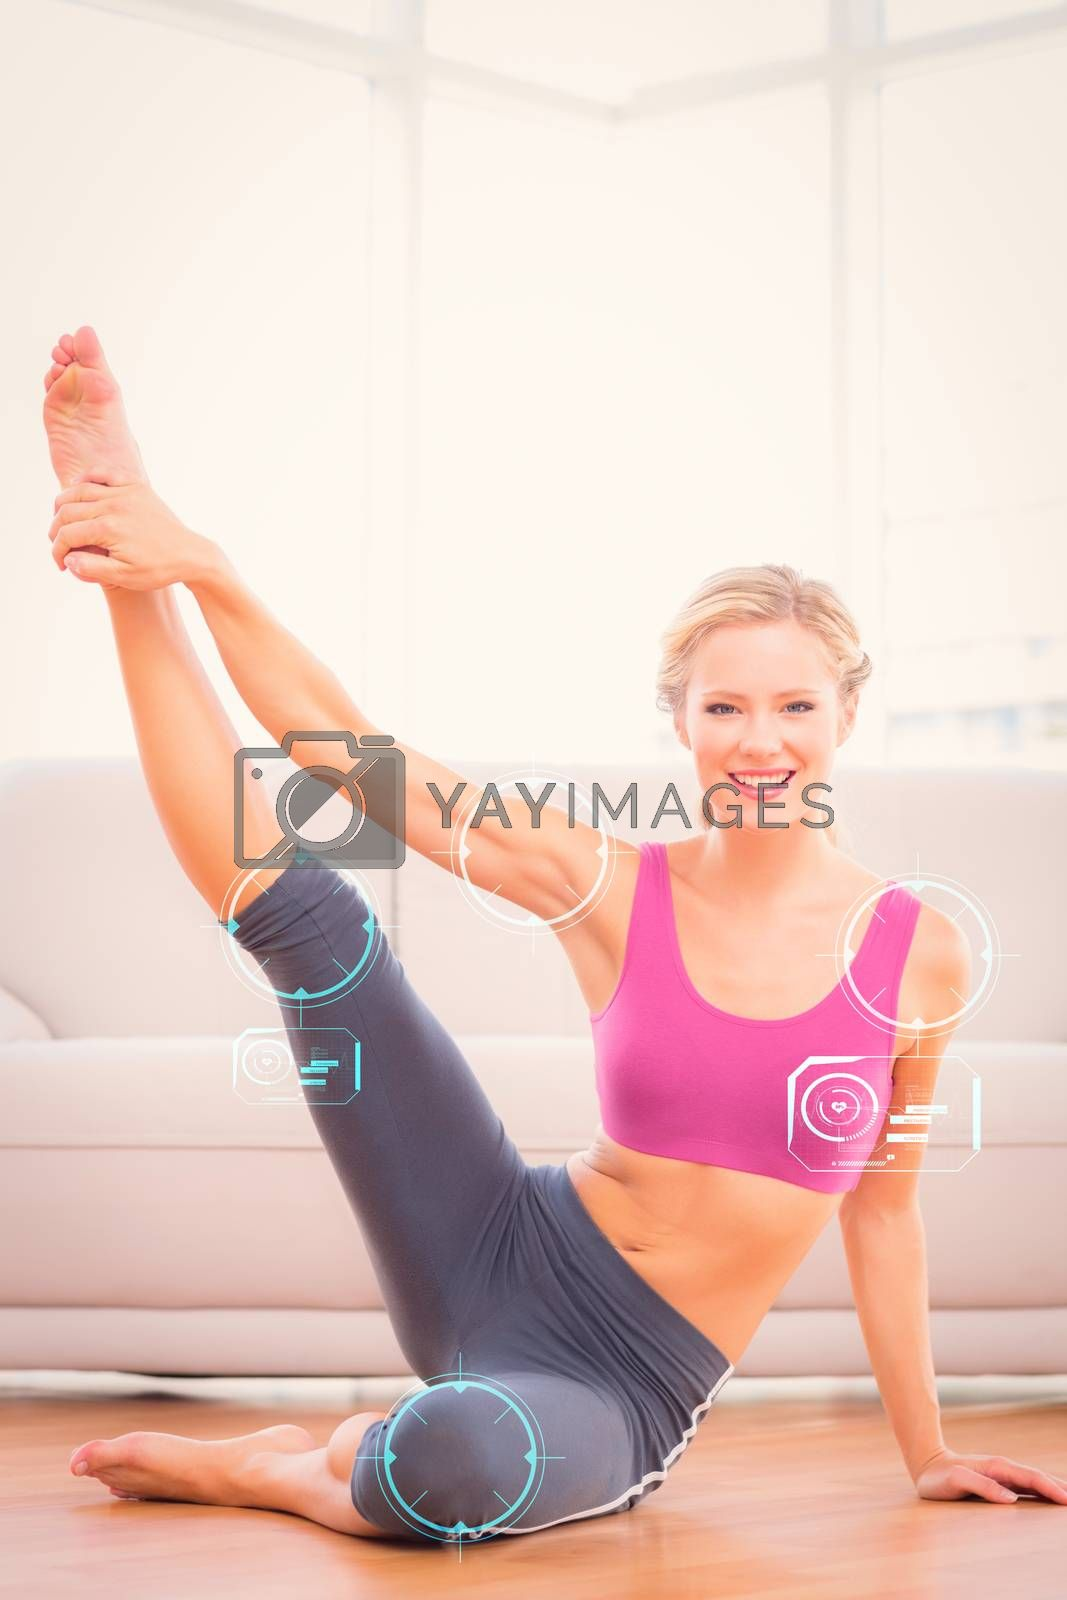 Athletic blonde sitting on floor stretching leg up smiling at camera against fitness interface